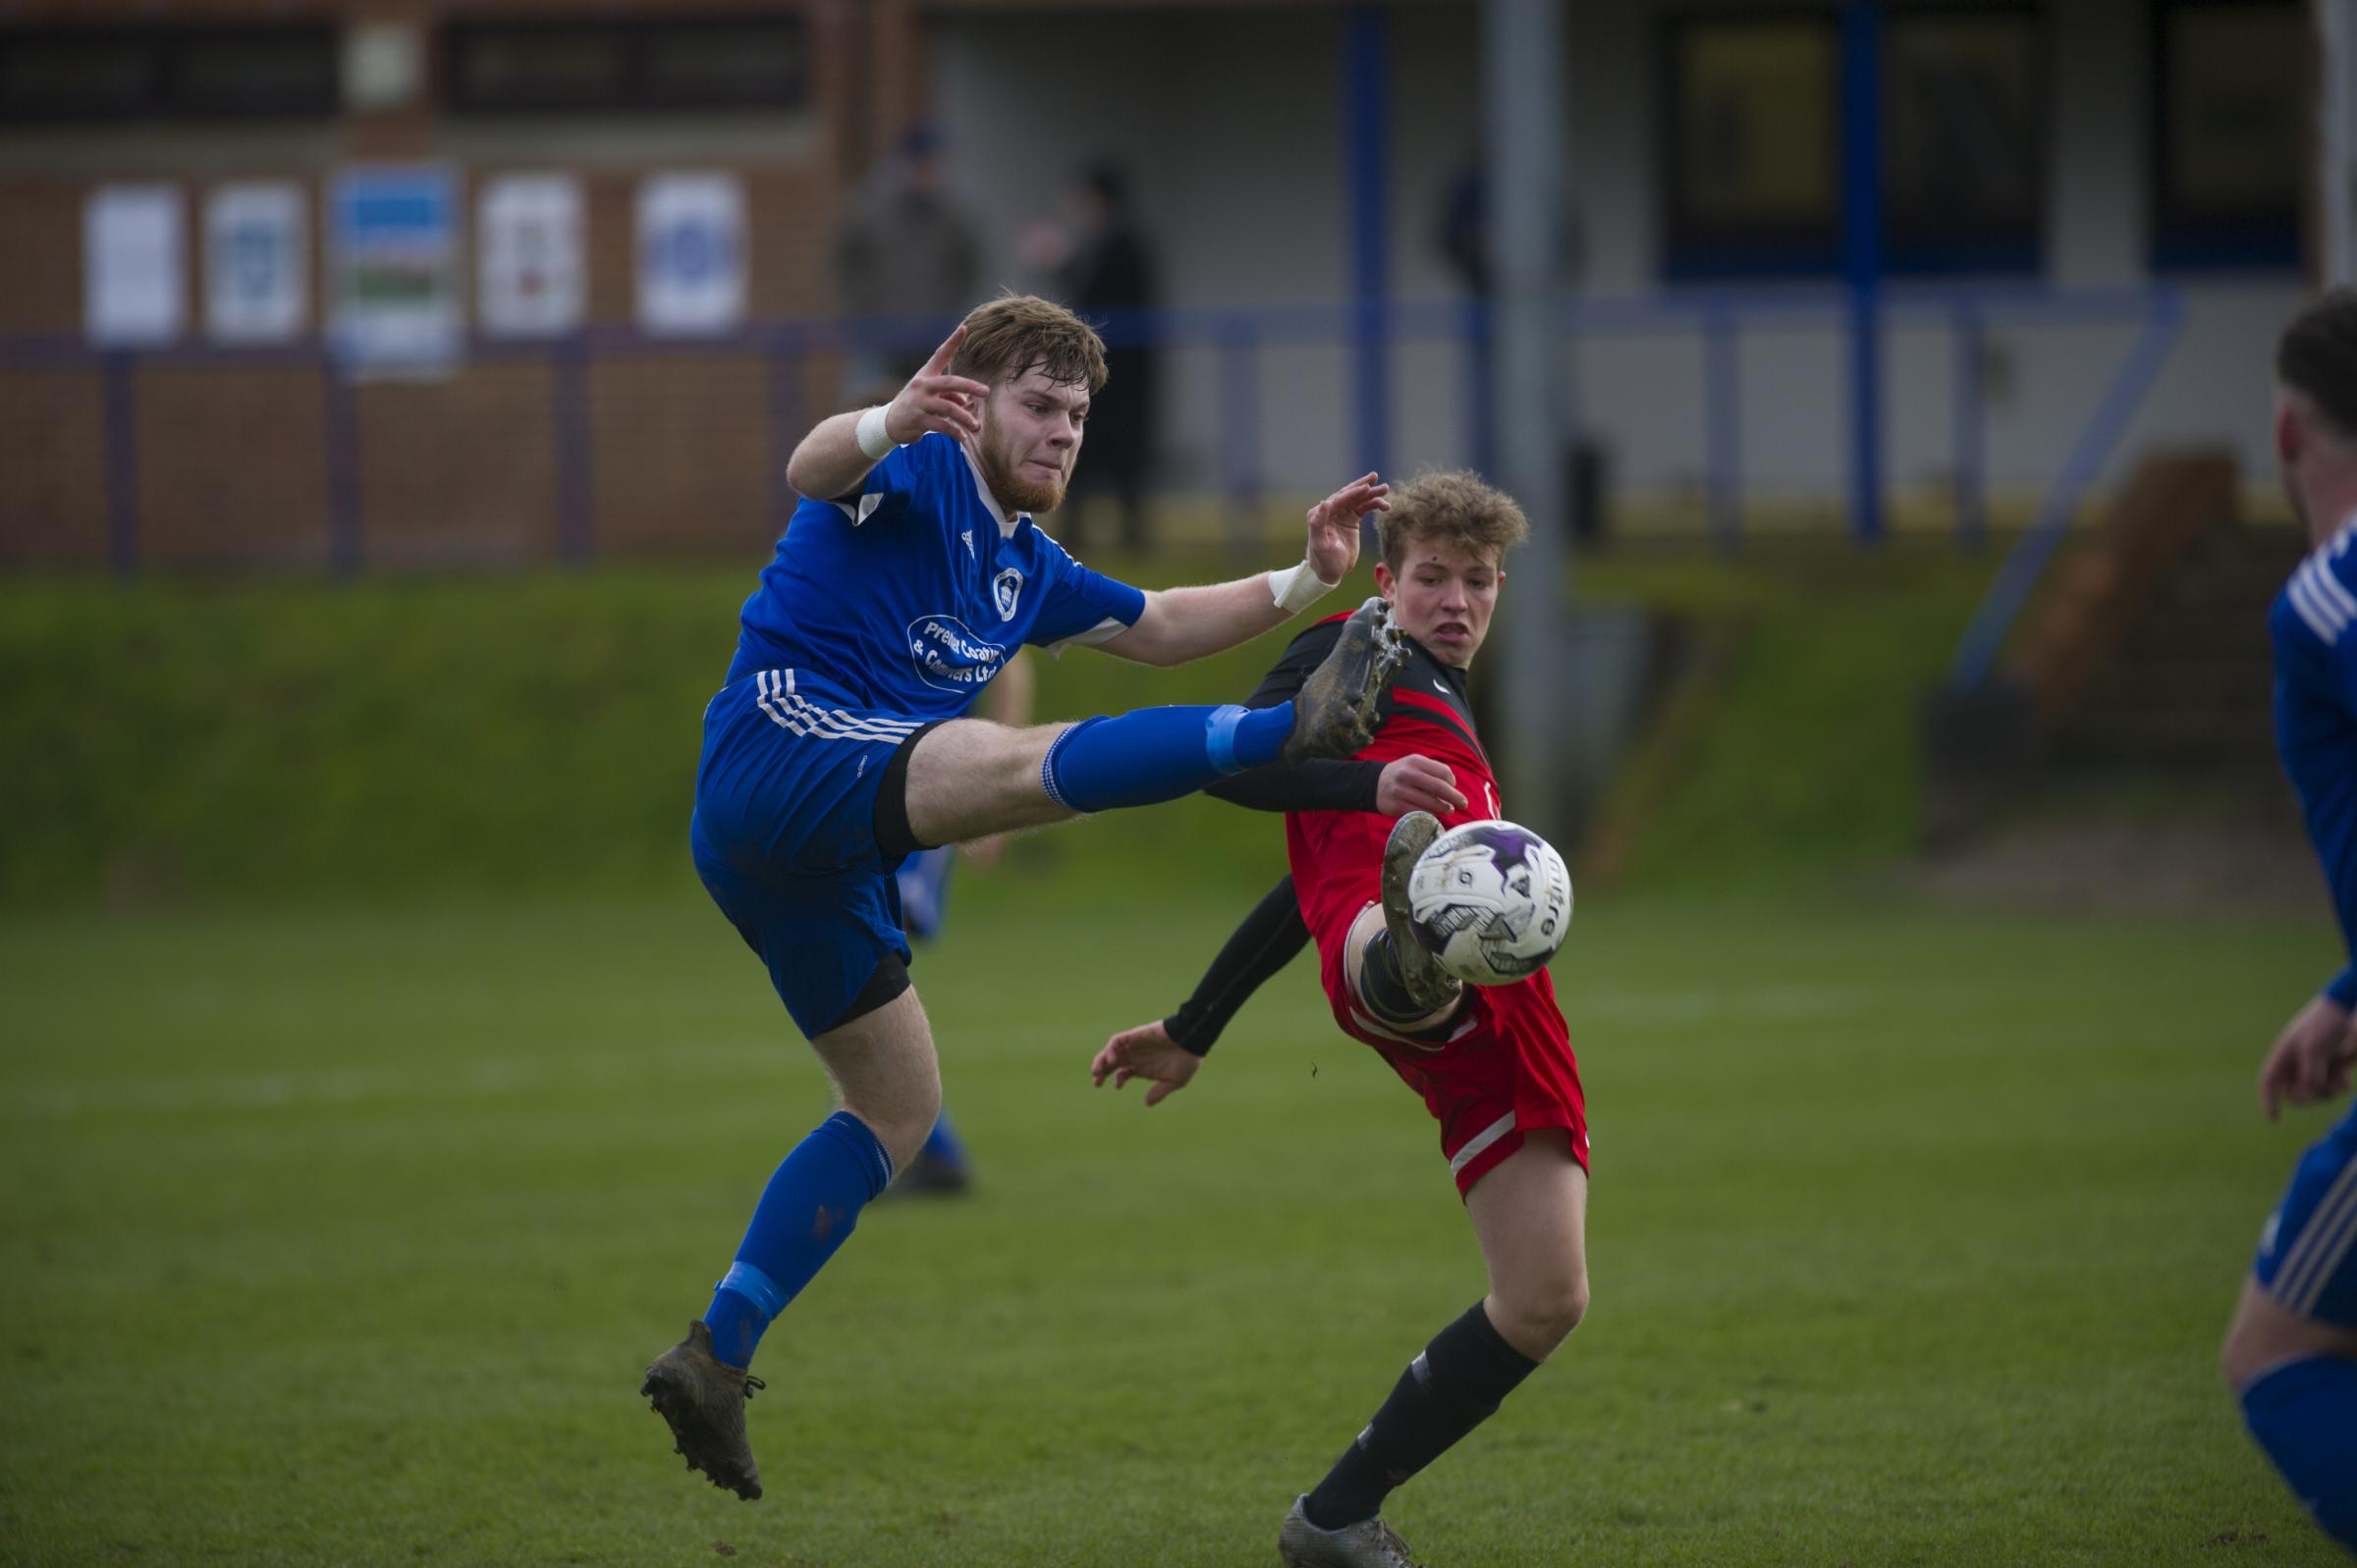 Andover Town v Verwood - Pictures by Dan Murphy